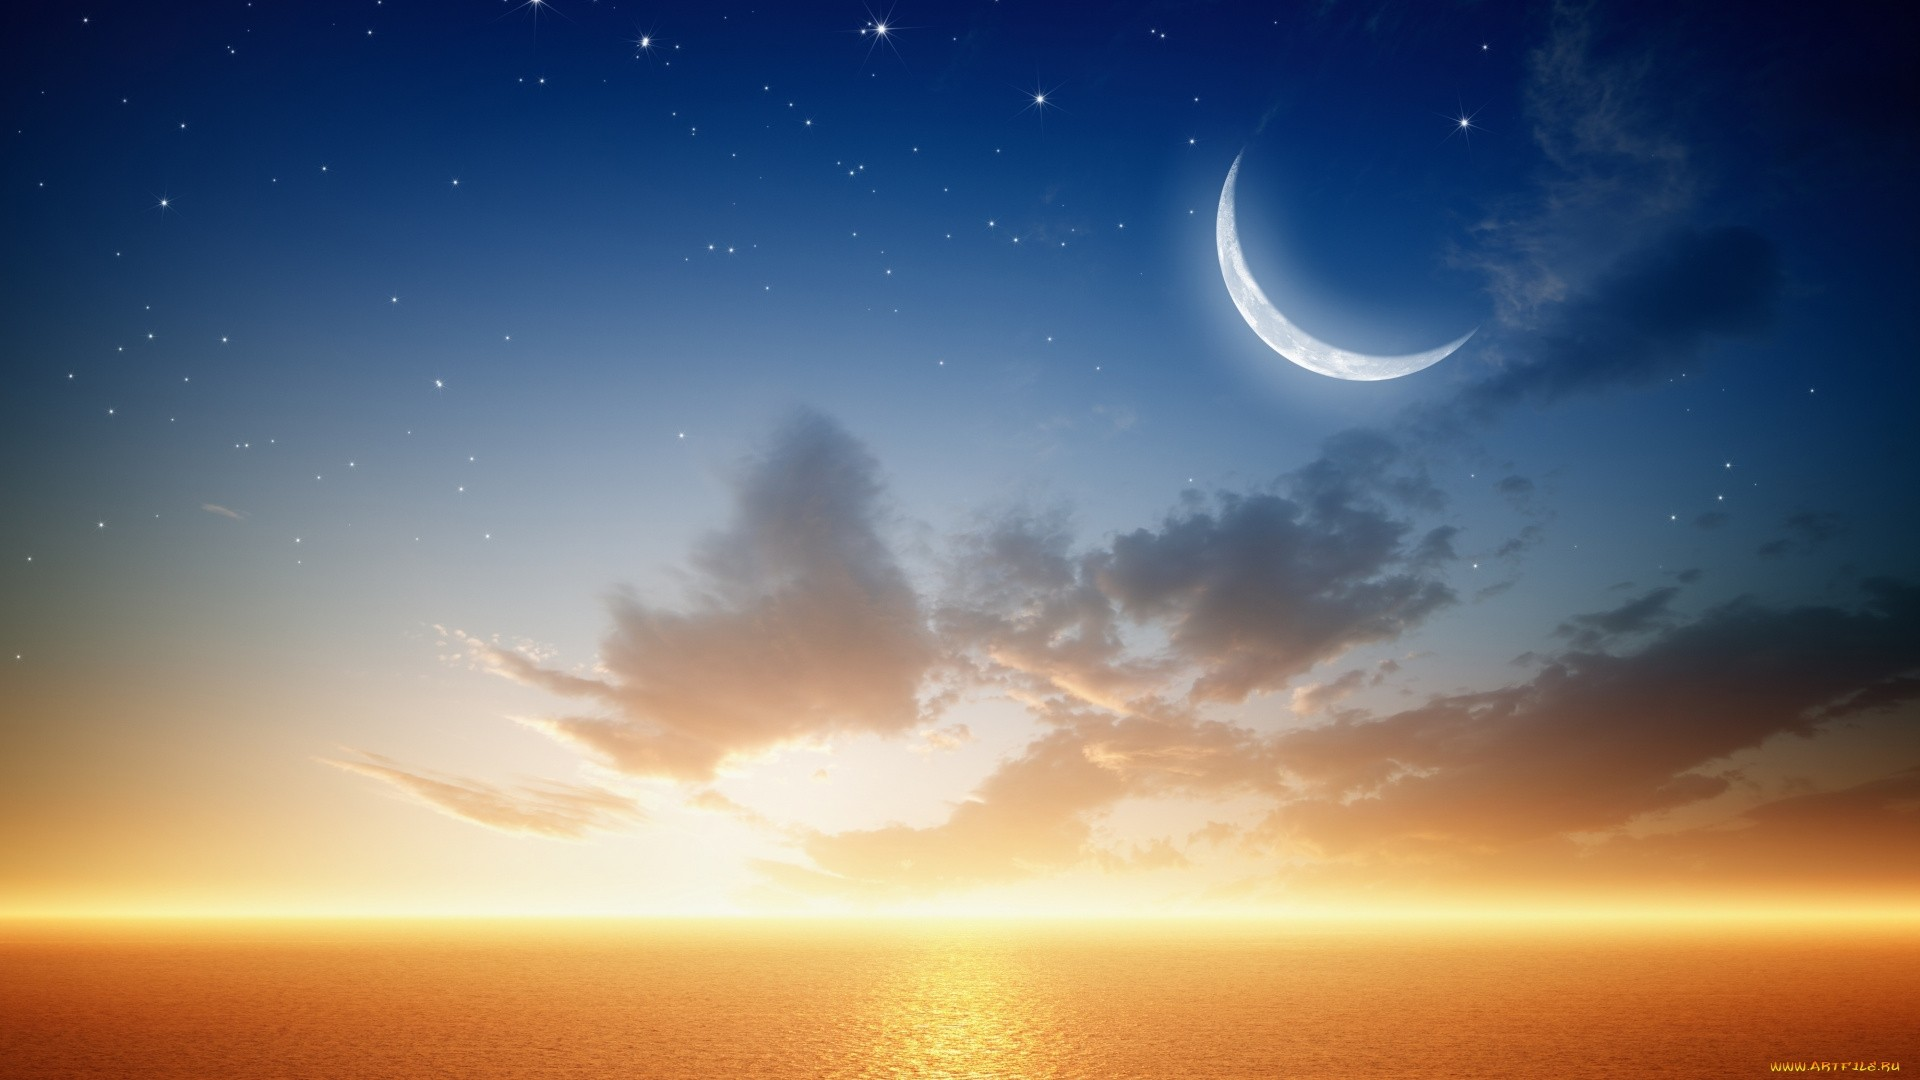 Moon And Stars Wallpaper for pc